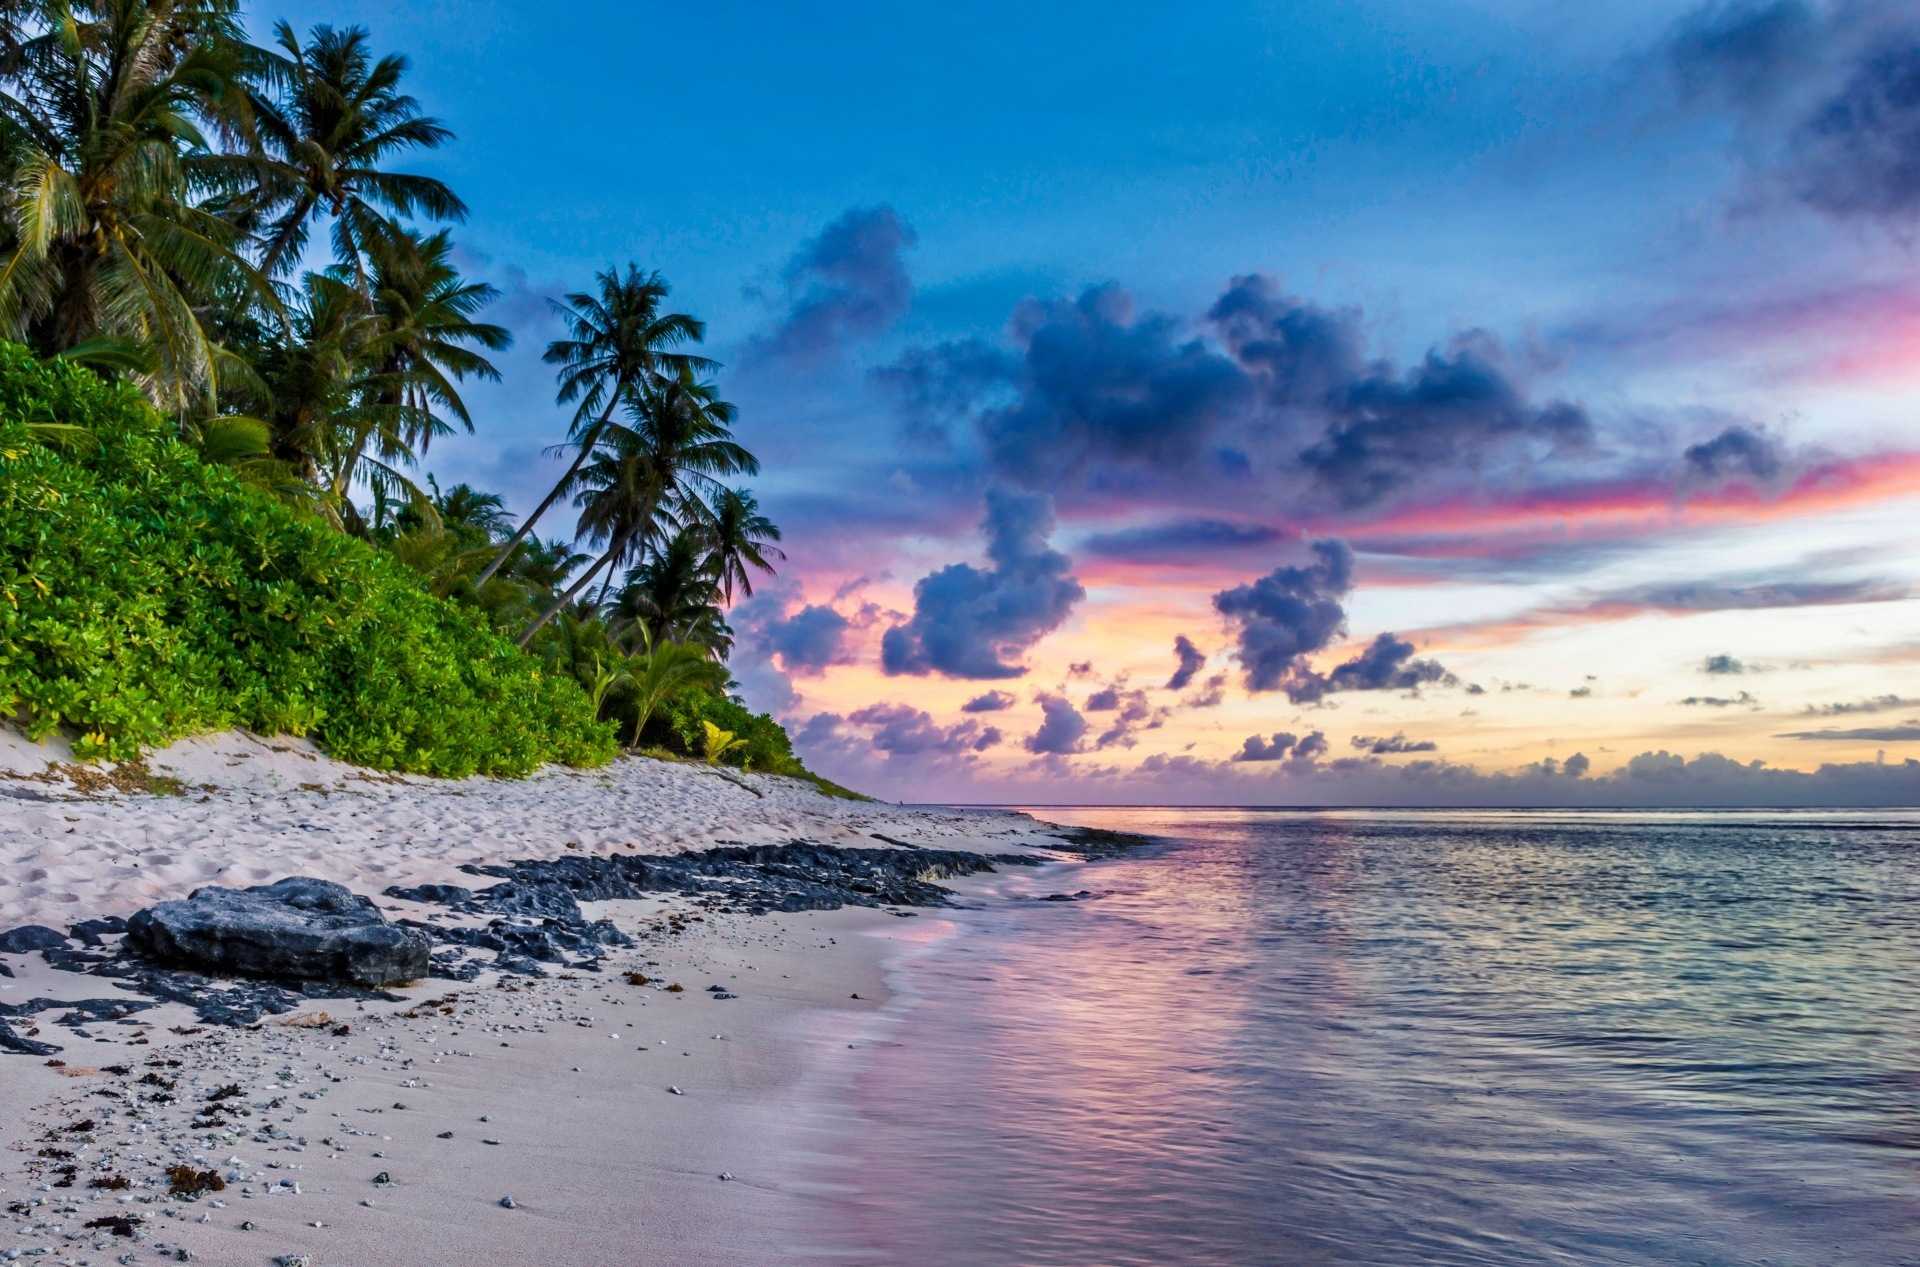 An image of a beach where you might relax if you earn enough to take an early retirement.